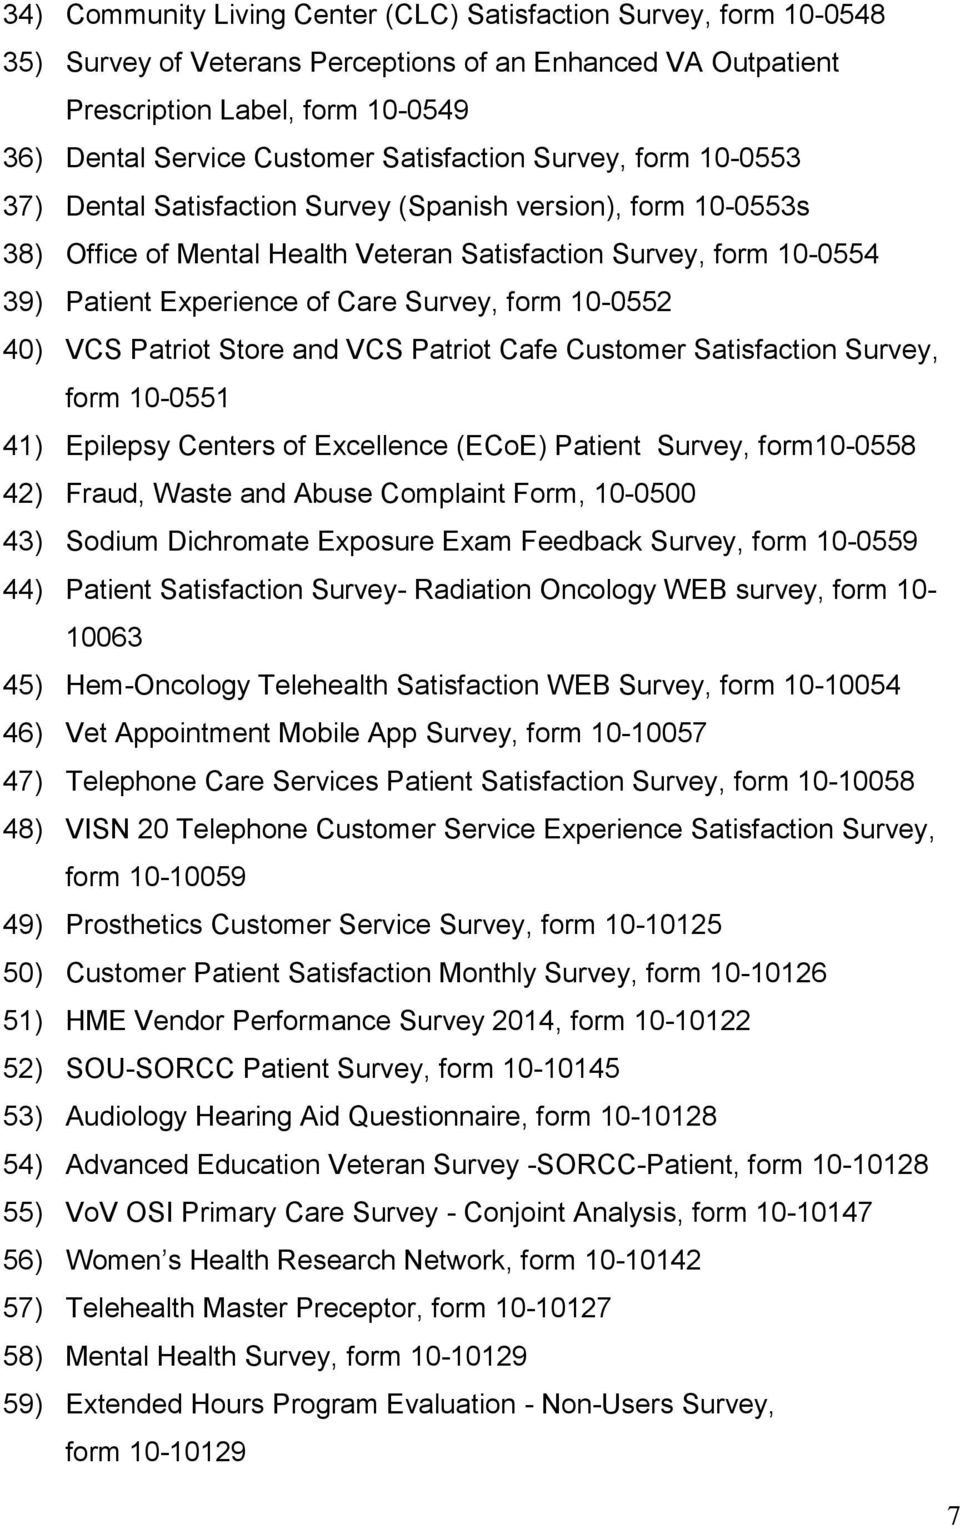 Survey, form 10-0552 40) VCS Patriot Store and VCS Patriot Cafe Customer Satisfaction Survey, form 10-0551 41) Epilepsy Centers of Excellence (ECoE) Patient Survey, form10-0558 42) Fraud, Waste and